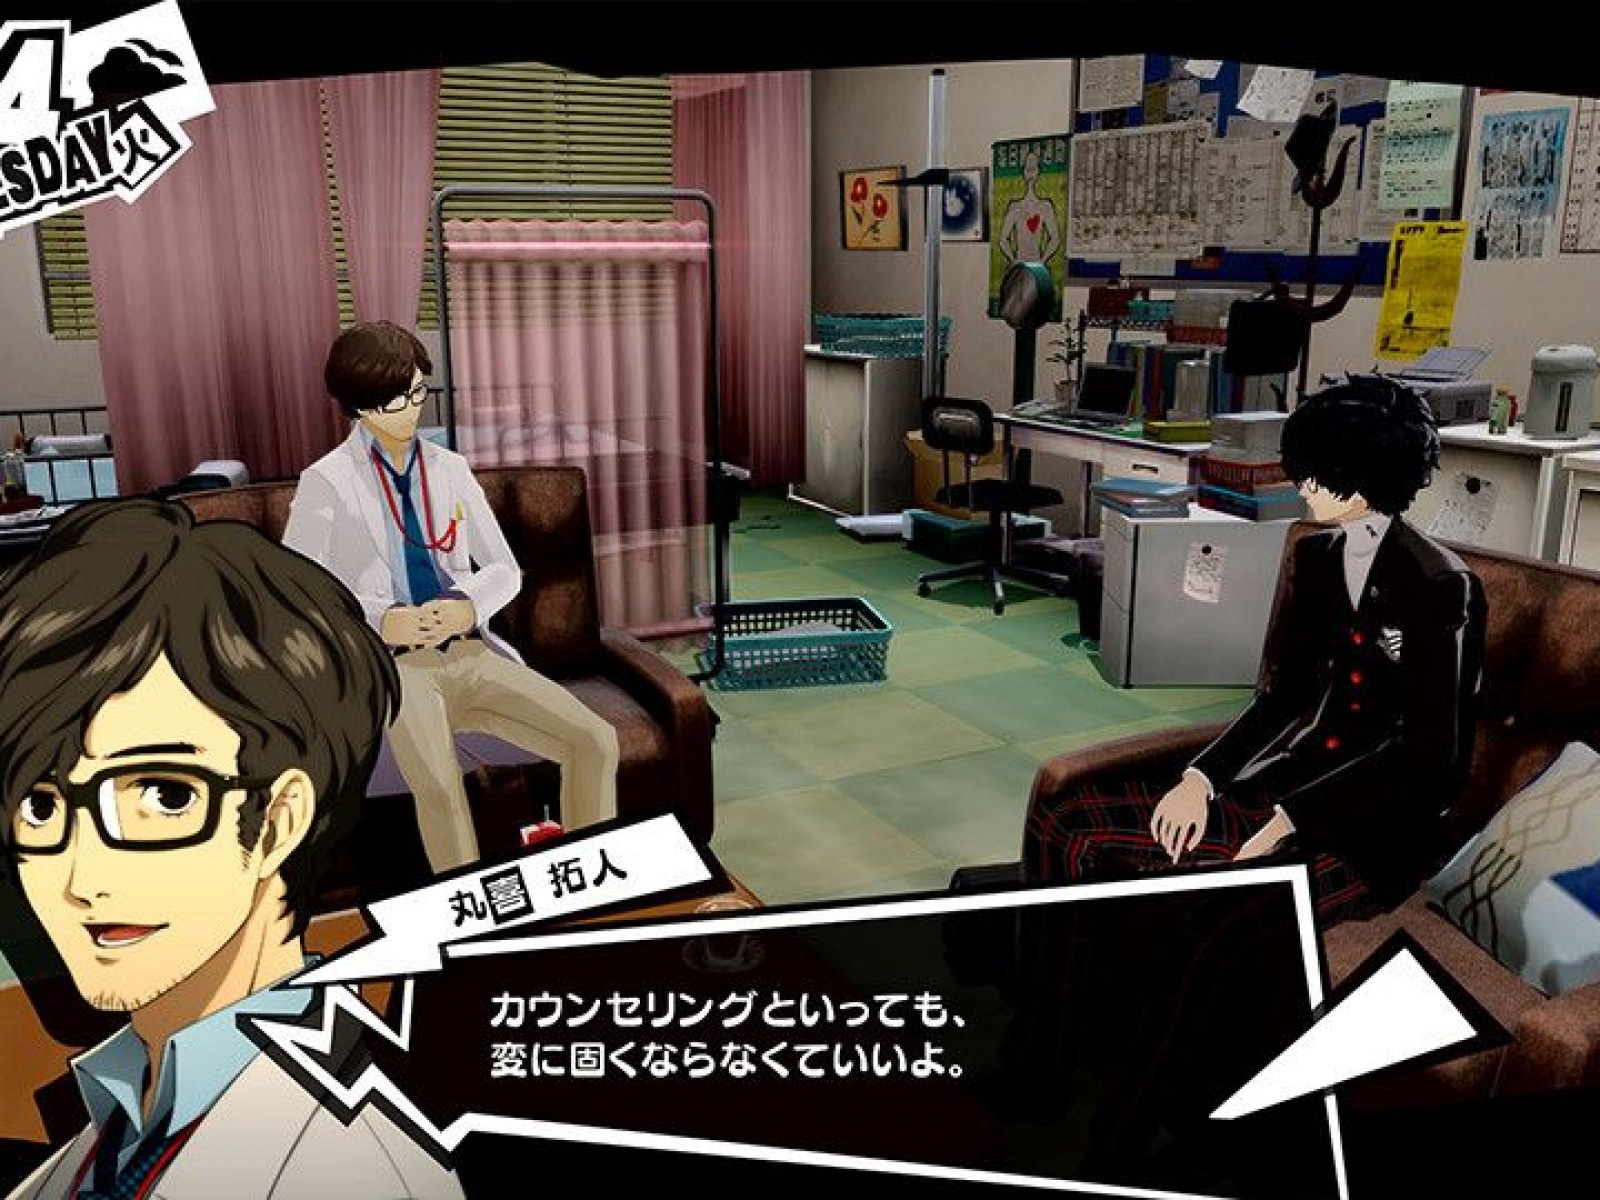 Persona 5 The Royal': Everything We Know So Far